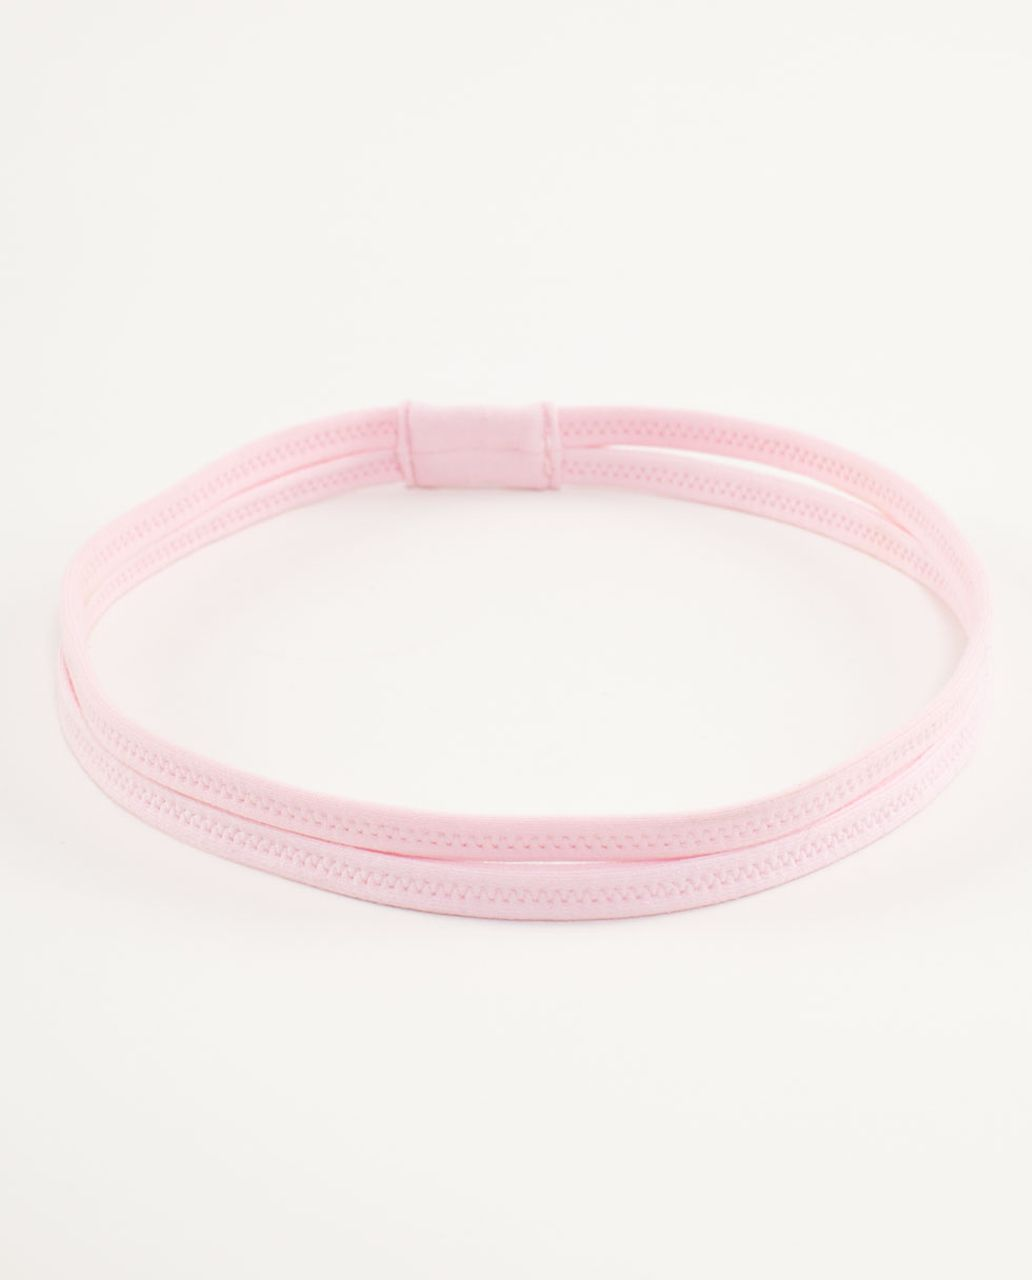 Lululemon DANCE! Headband - Pig Pink /  Heathered Pig Pink